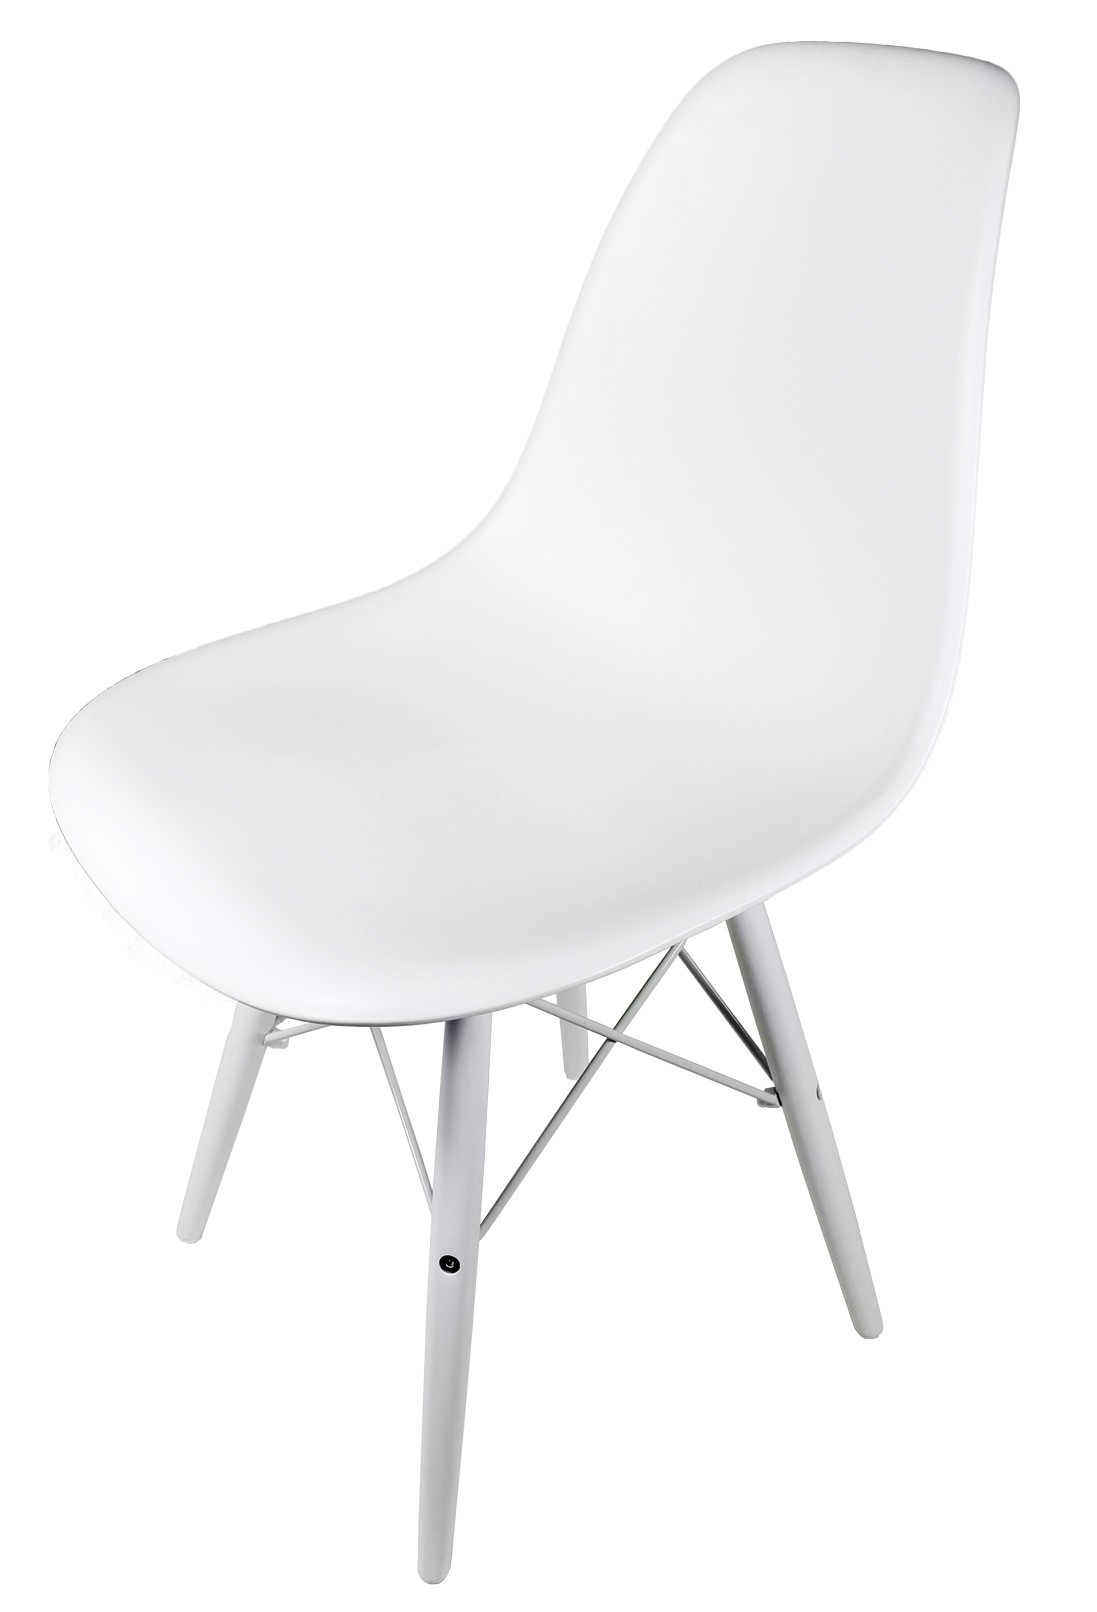 Eames Style DSW Molded White Plastic Dining Shell Chair With White Wood Eiffe